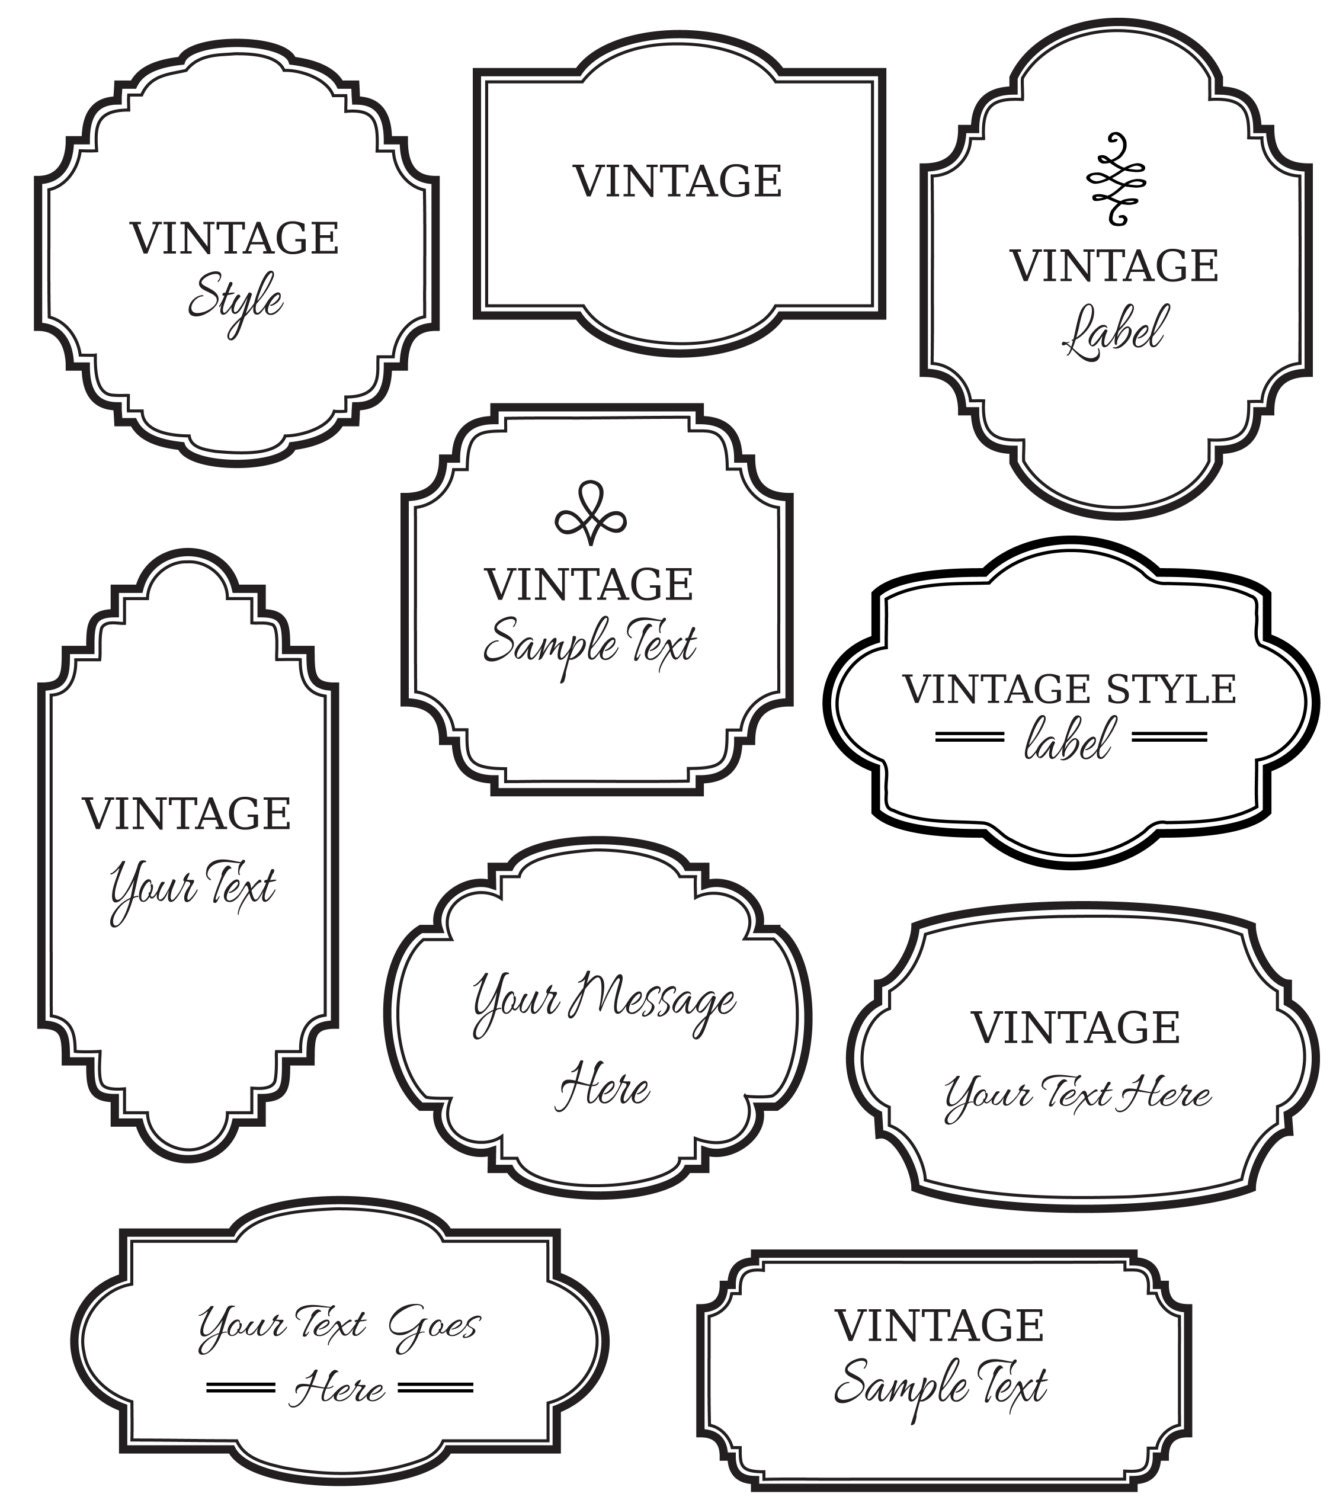 Decorative Label Outline Vintage labels clip artVintage Label Outline